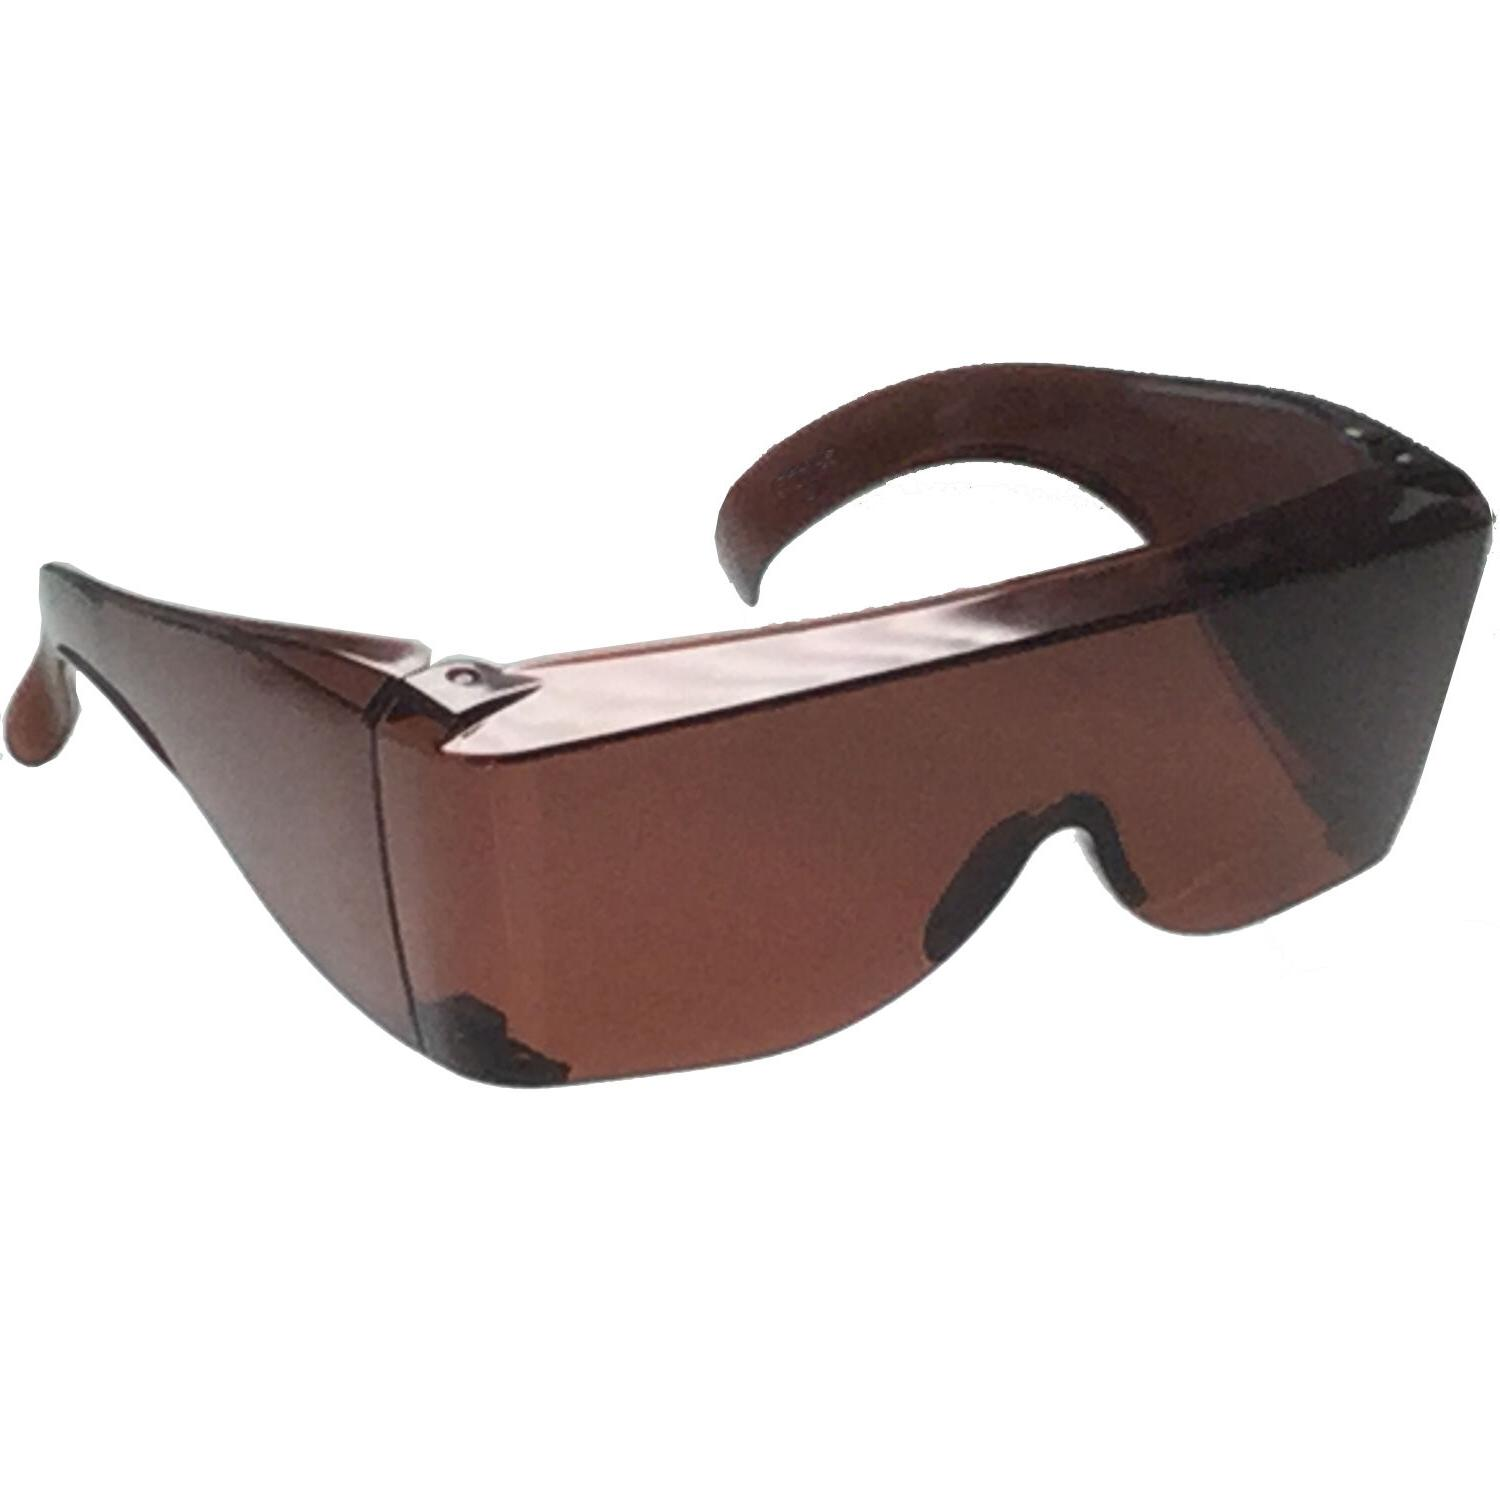 Blue Blocker Extra Fit COVER Over Rx Glasses Sunglasses Safety put